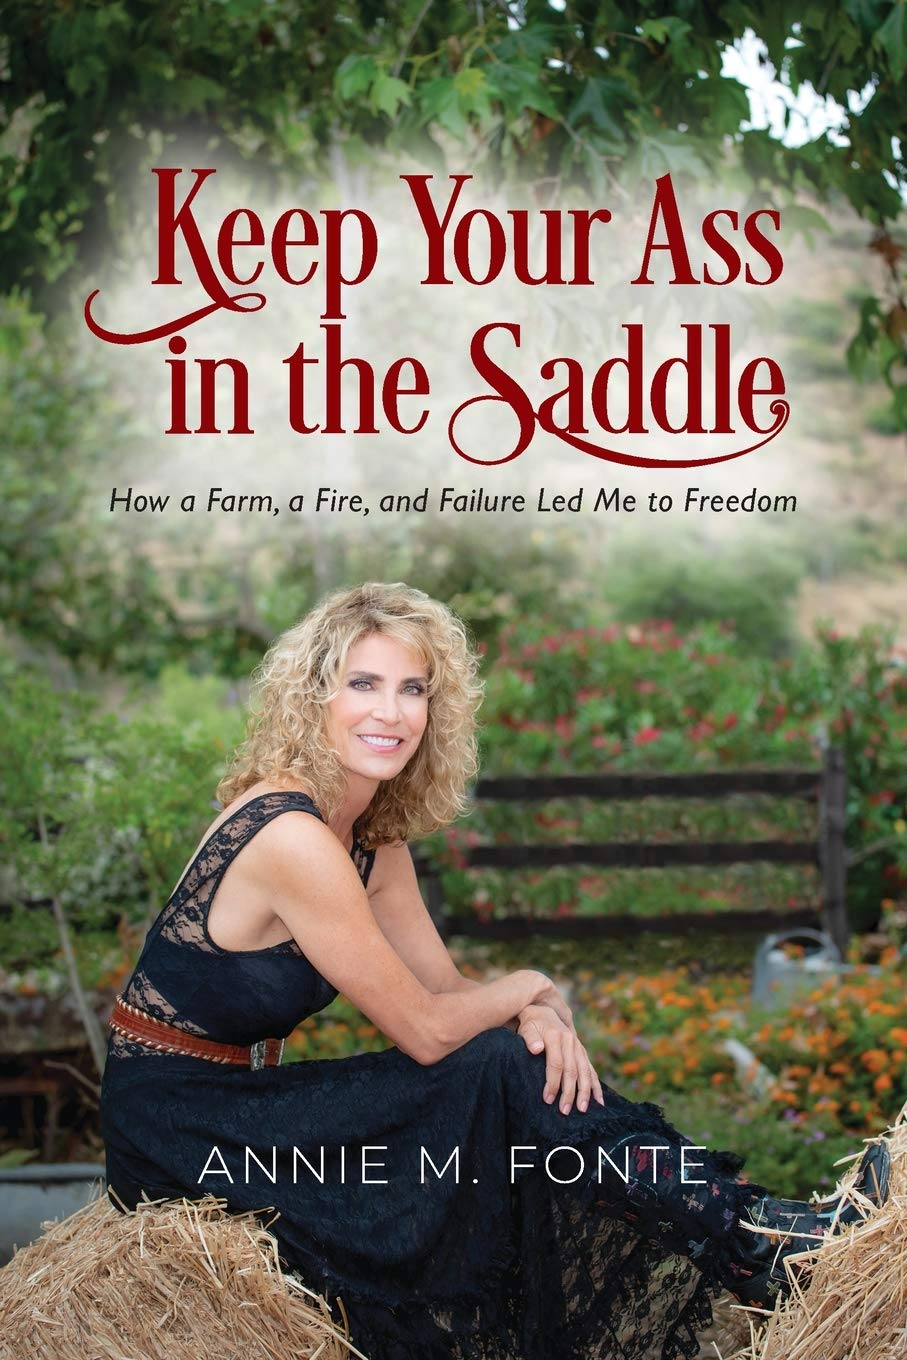 Keep Your Ass in the Saddle: How a Farm, a Fire, and Failure Led Me to Freedom